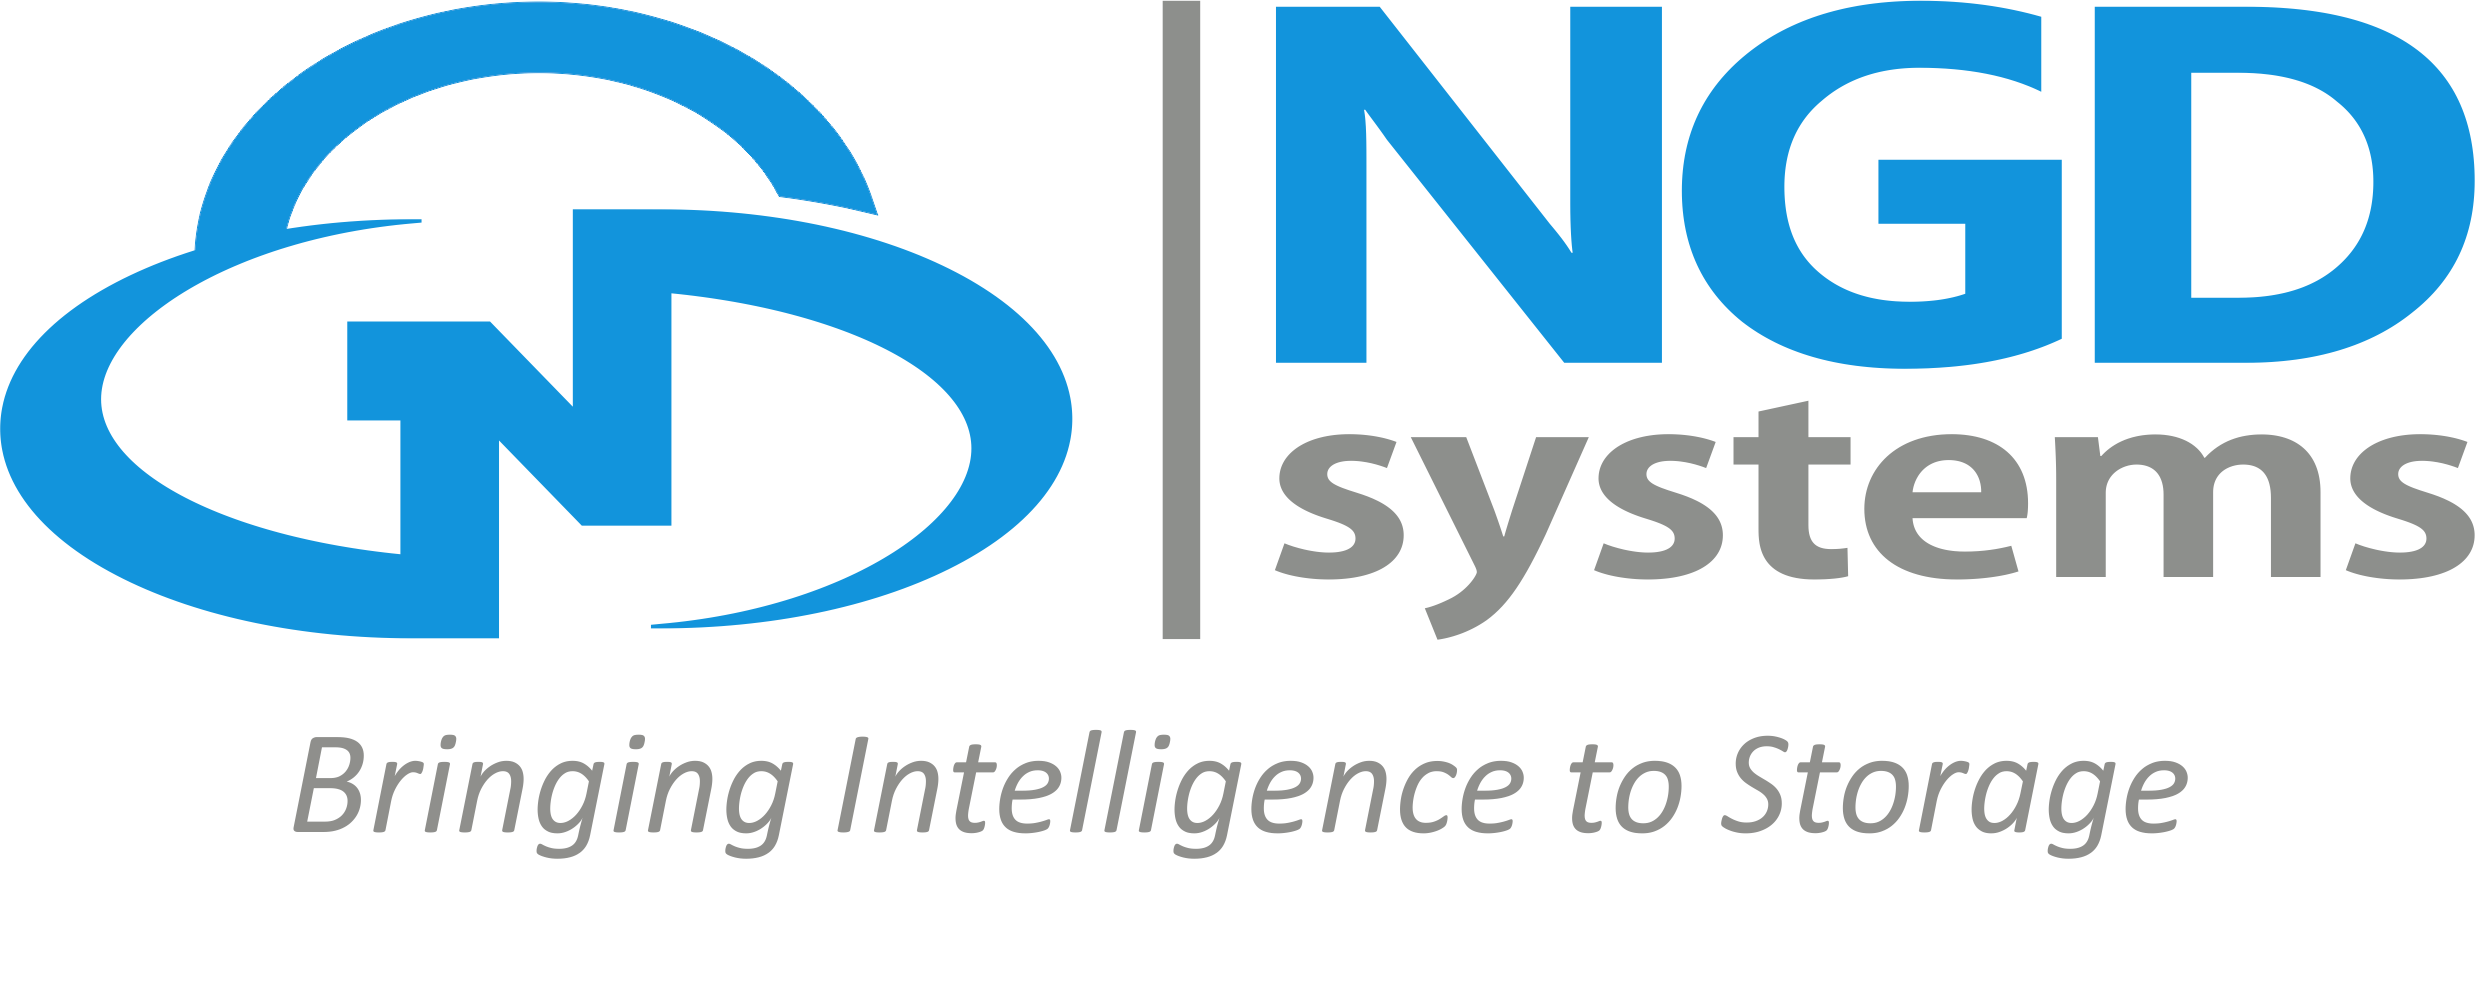 NGD Systems Logo 2.png